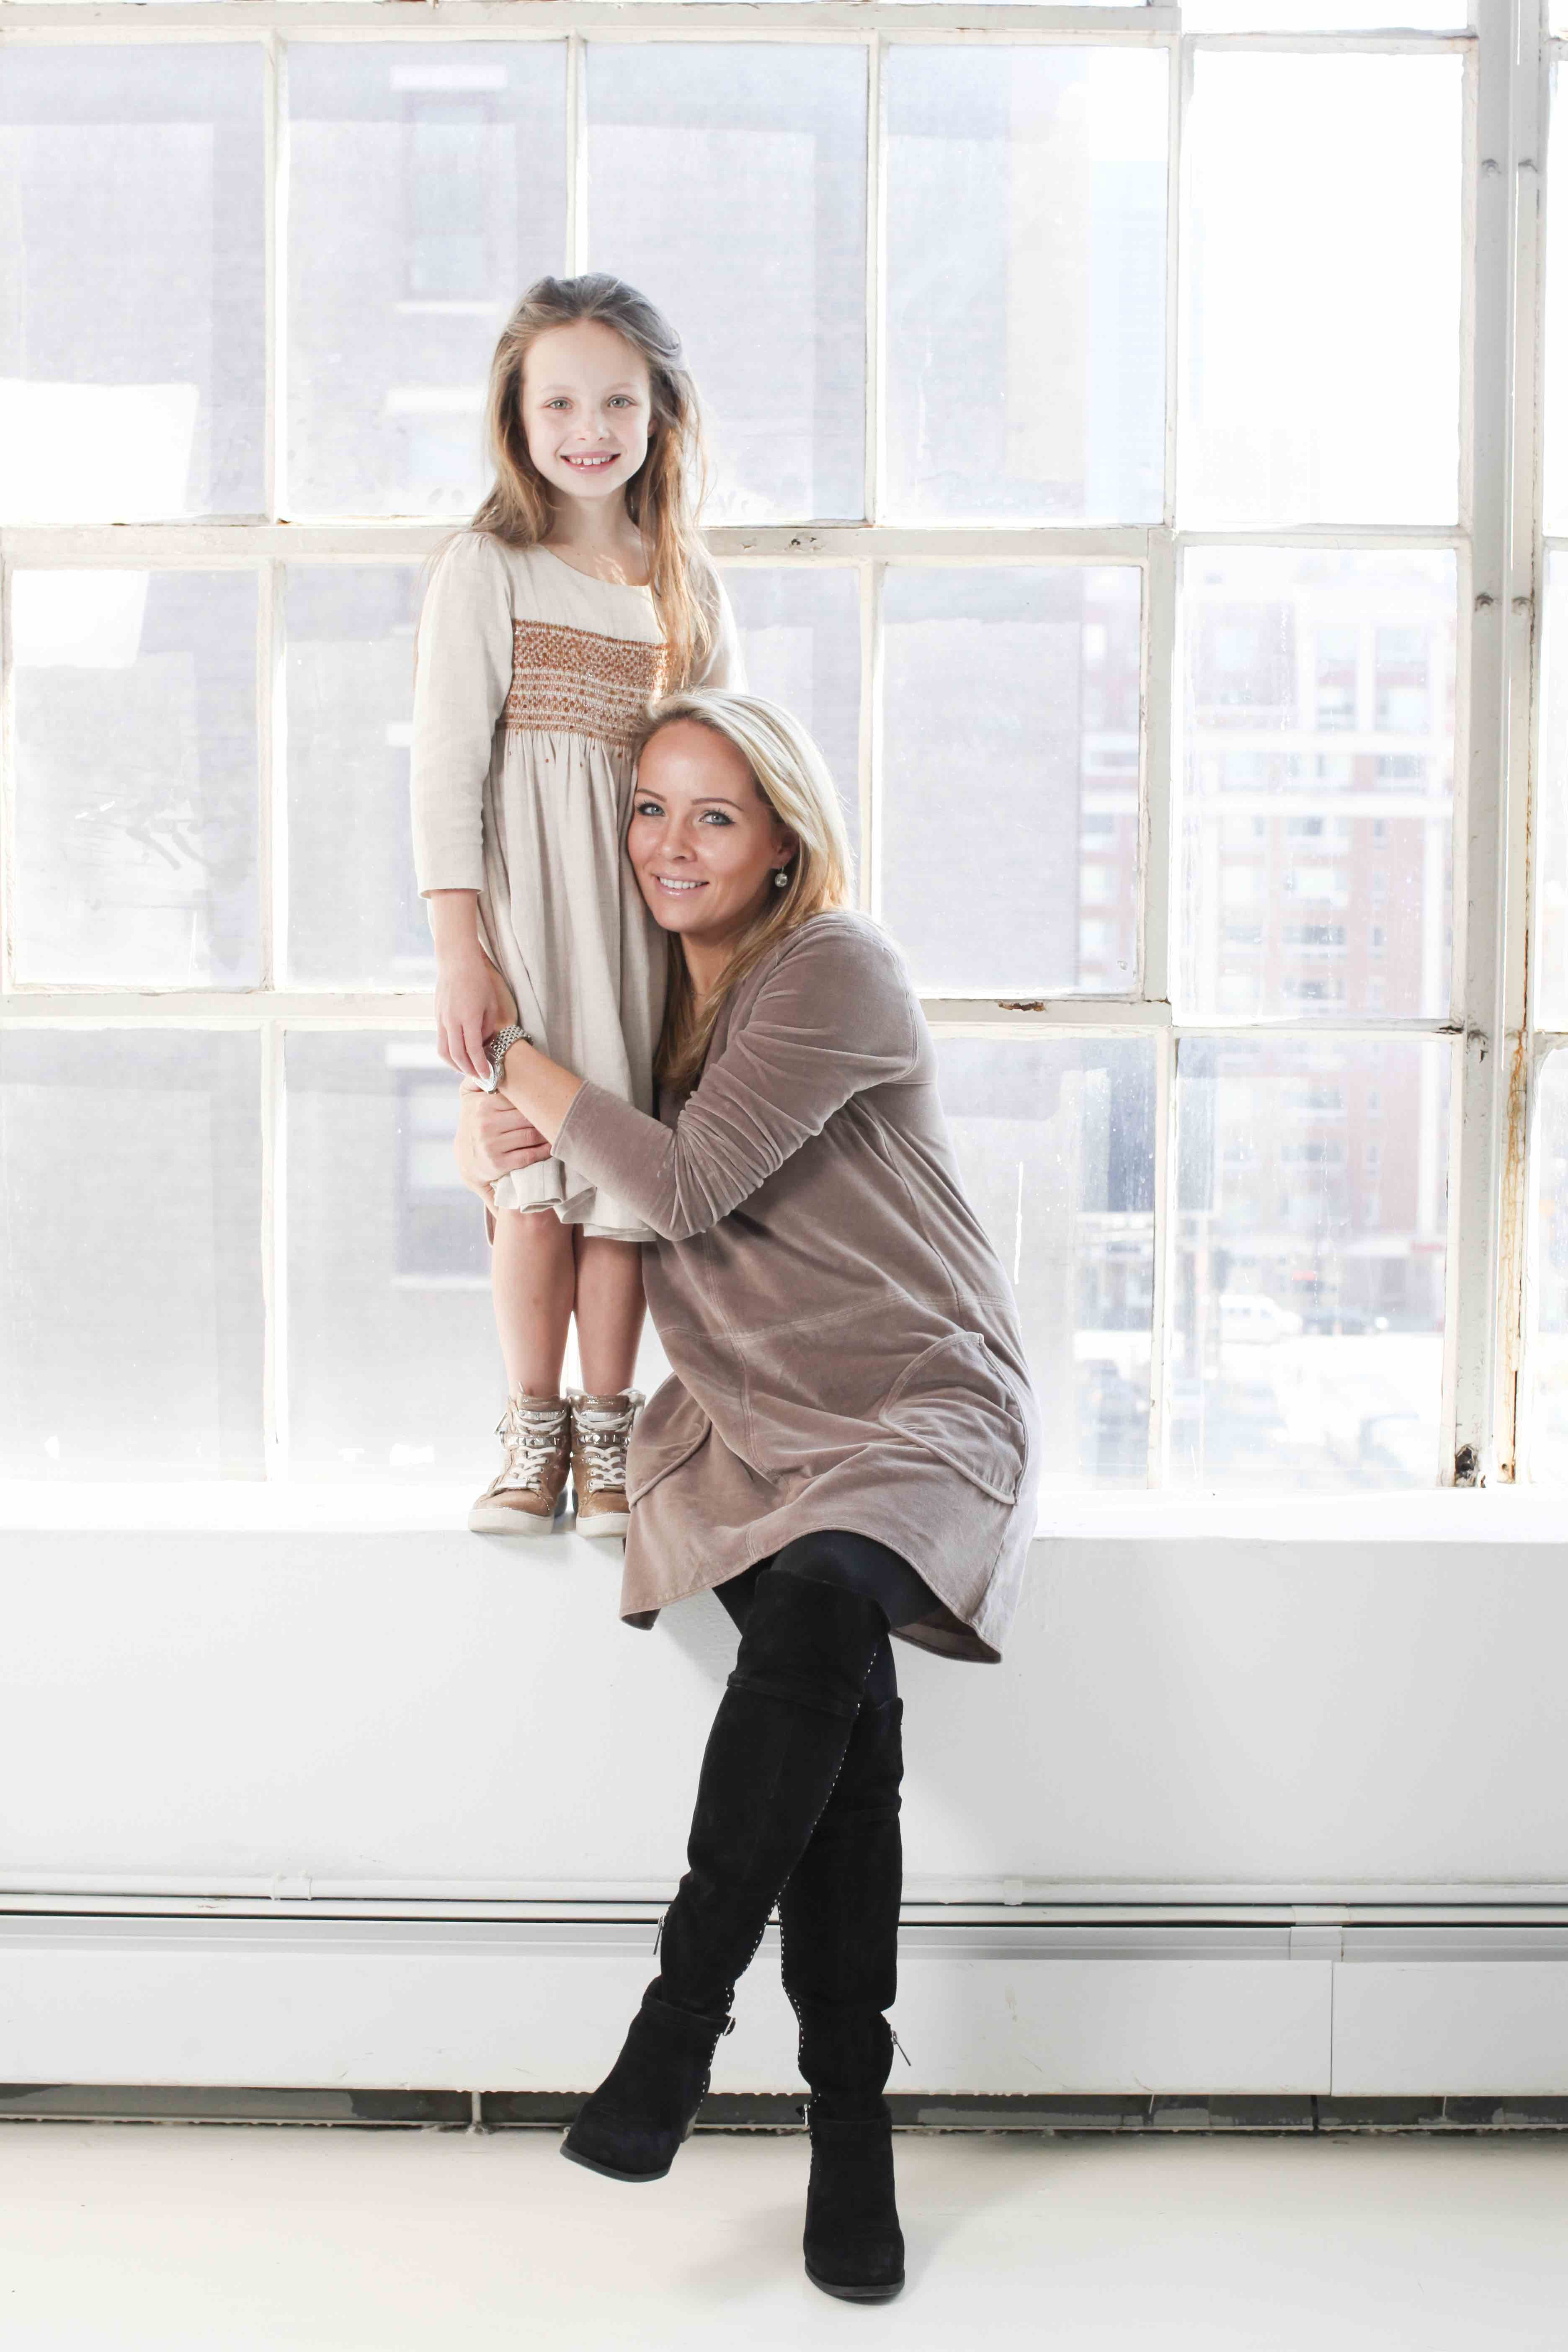 Mother and Daughter art project by Lee Clower shot in NYC